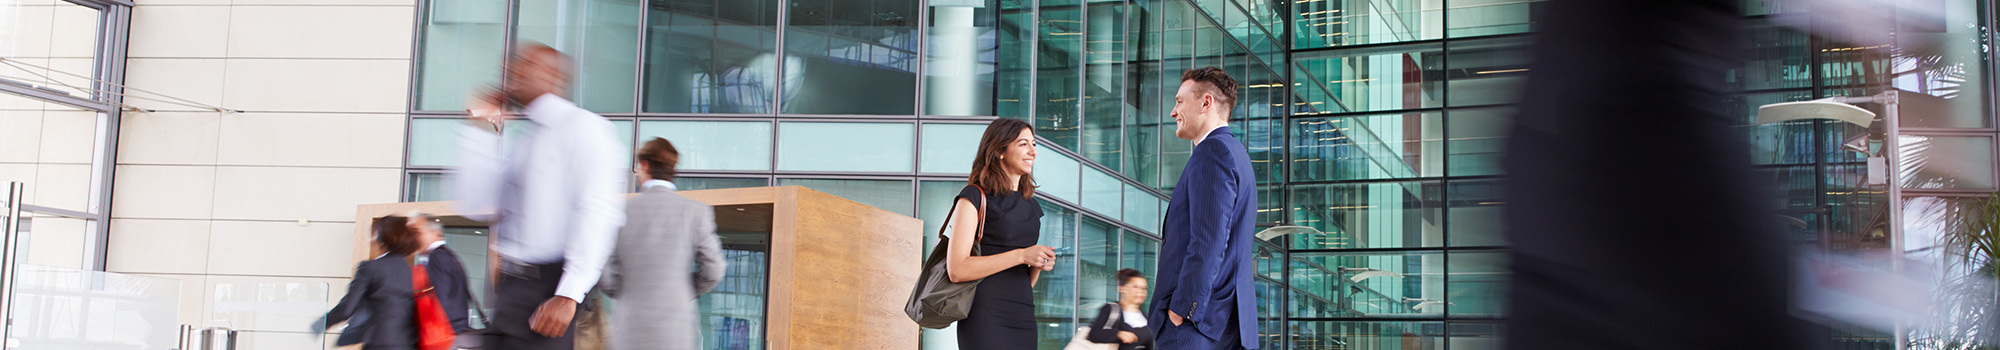 Why are more legal professionals choosing the interim path?